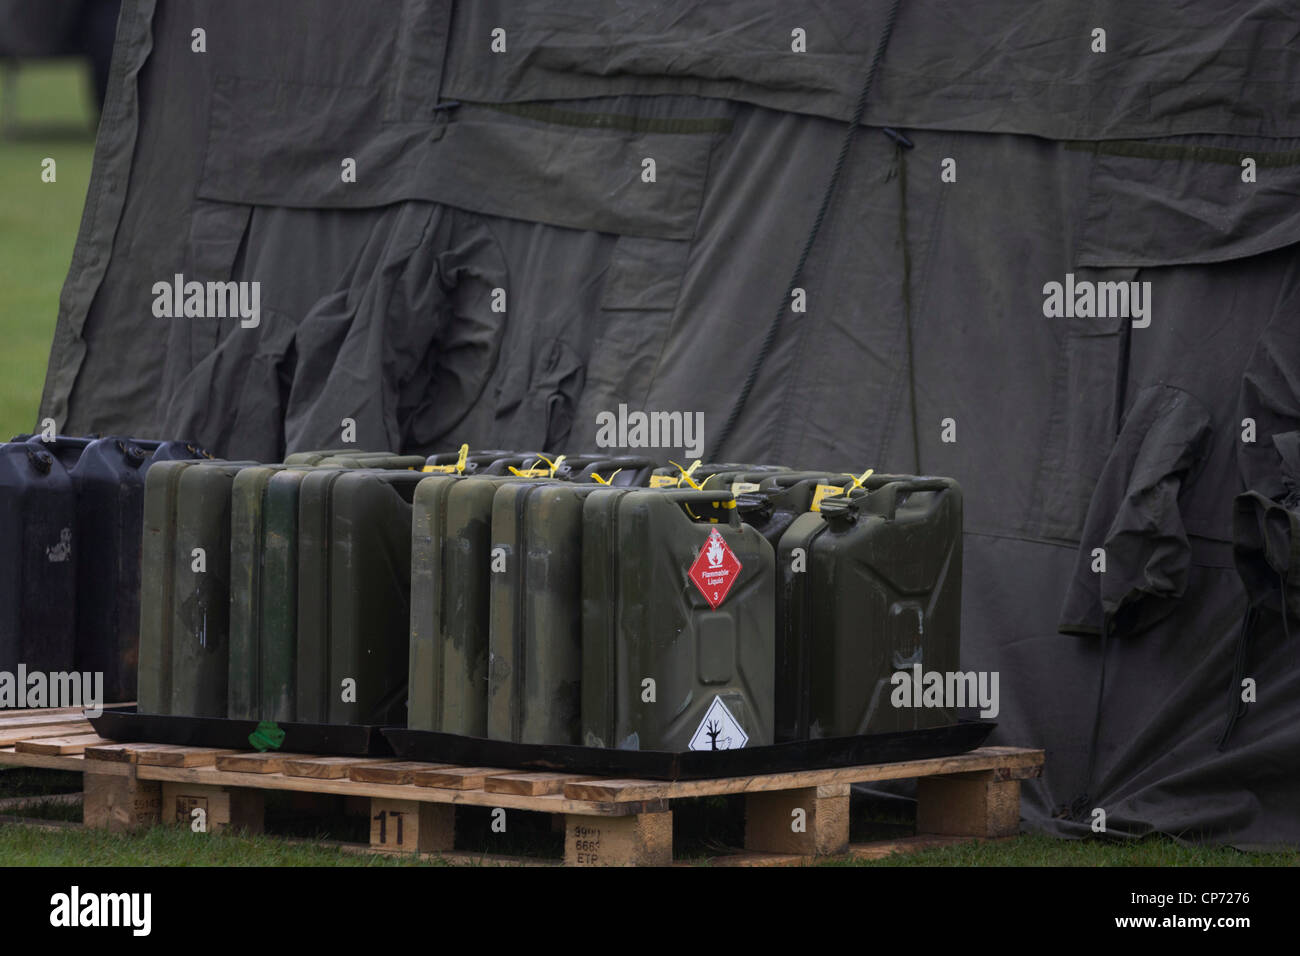 Secured flammable liquids in jerrycans relating to Rapier surface-to-air missiles stationed on Blackheath, a security - Stock Image